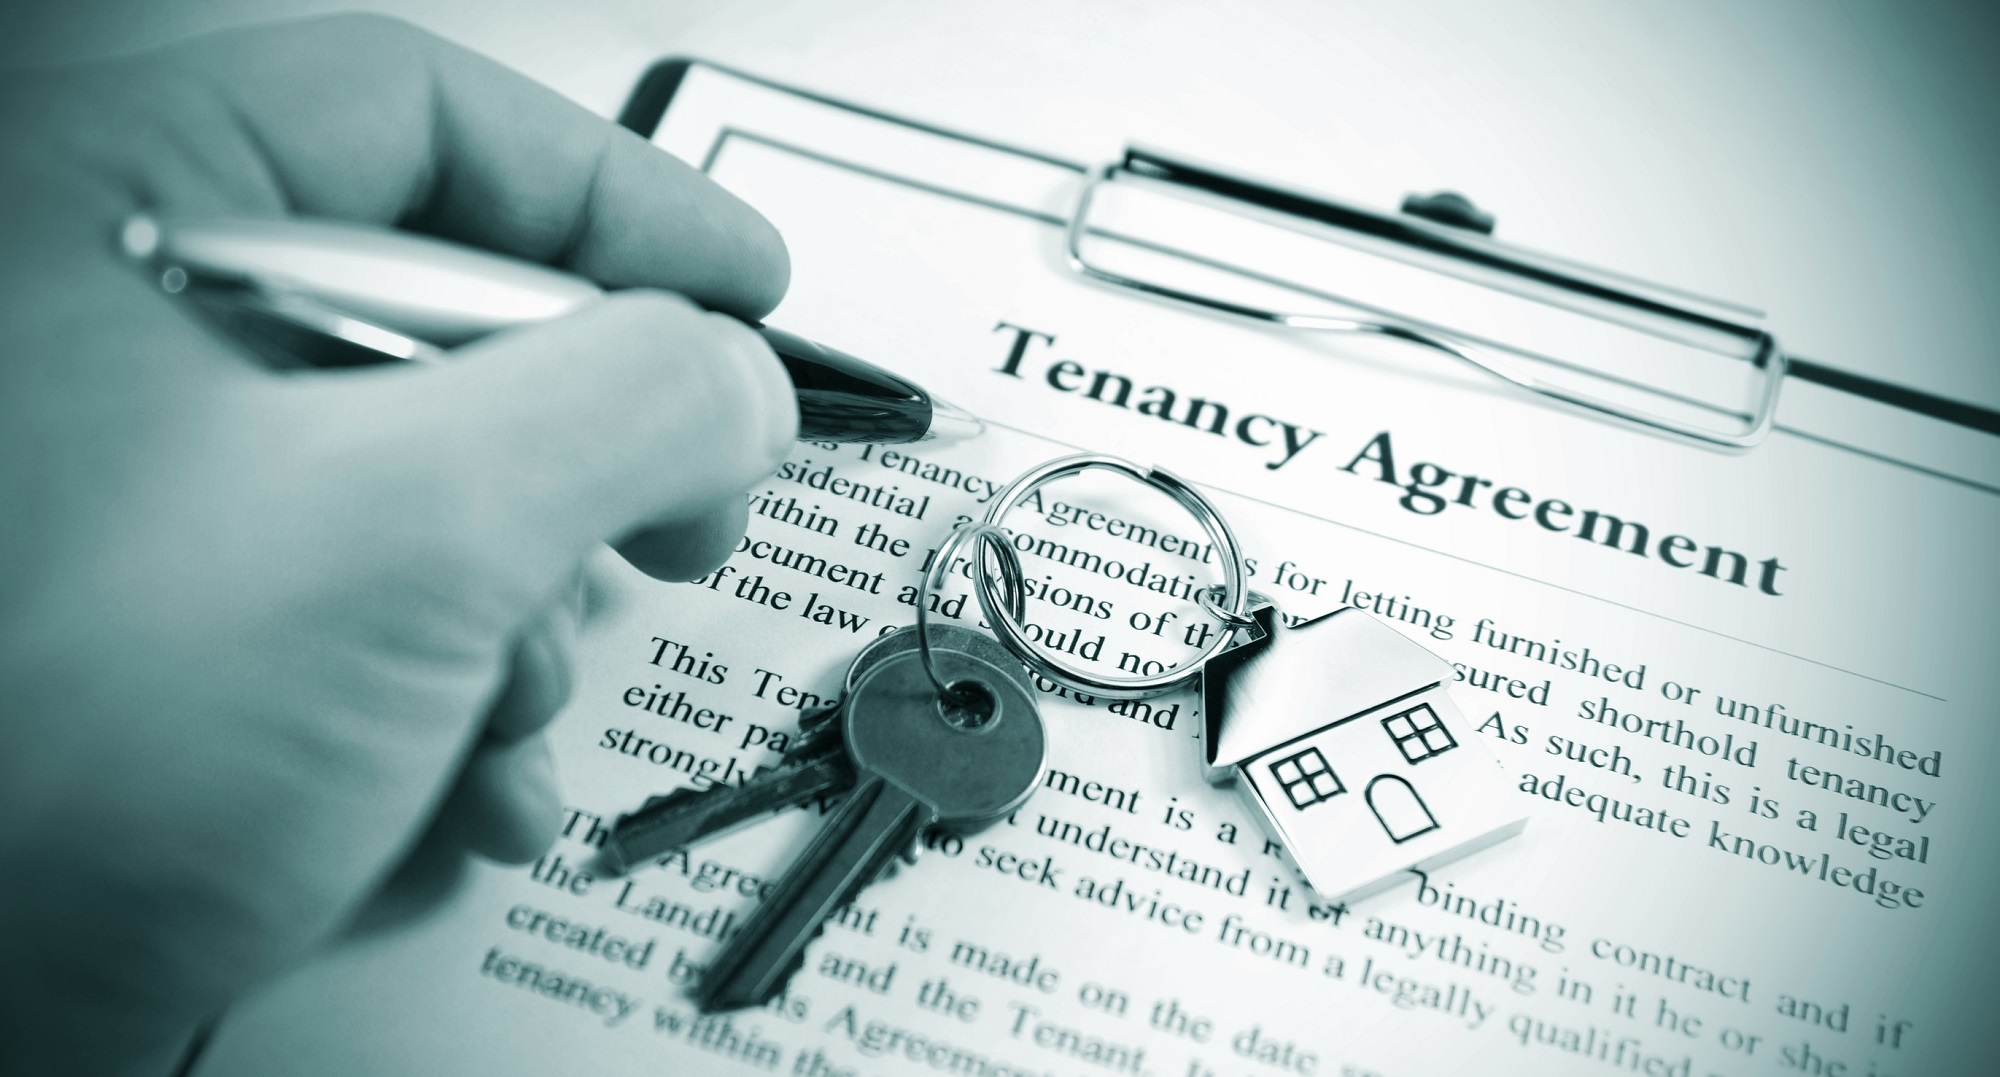 Renting a property: 10 top tips for tenants